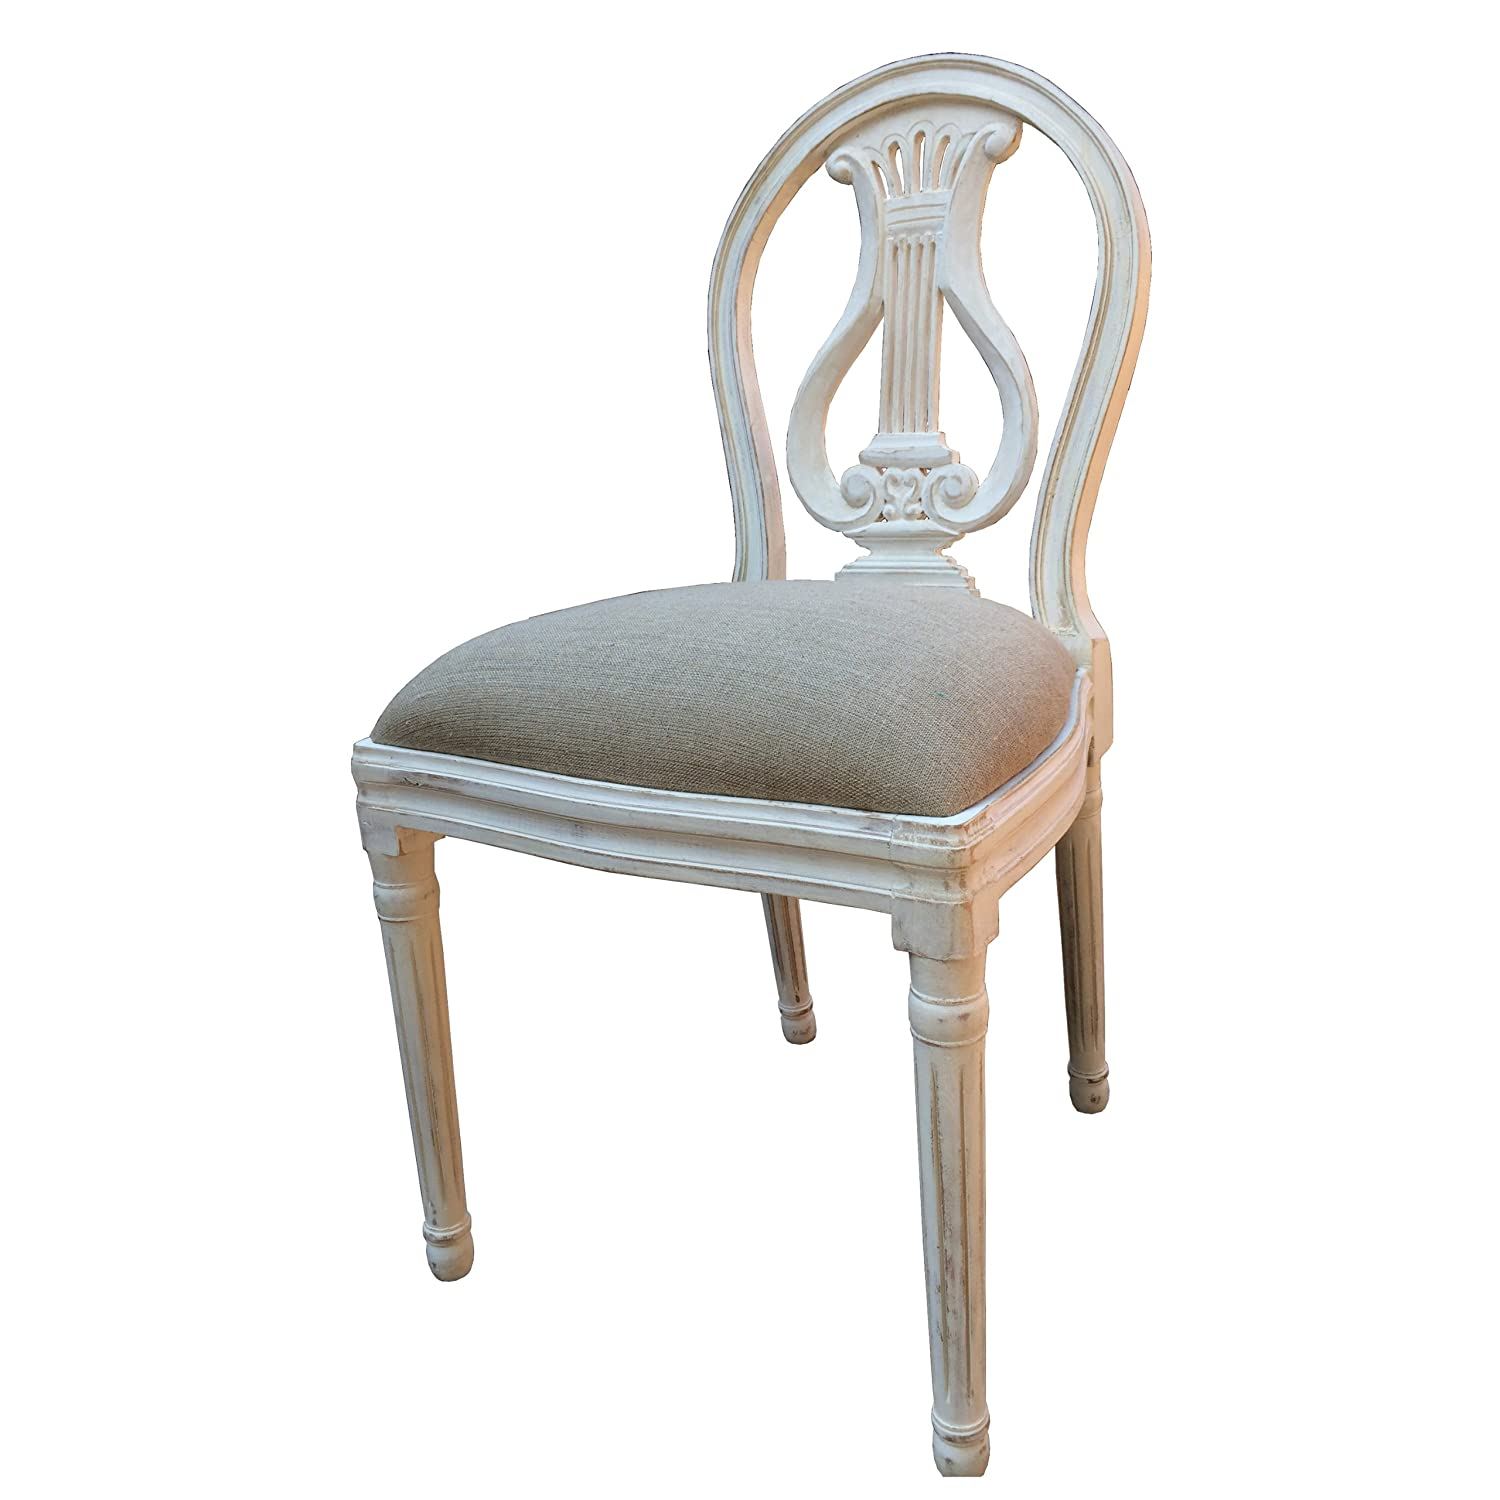 A French Style Shabby Chic Dining Chair in White Distressed Finish ...